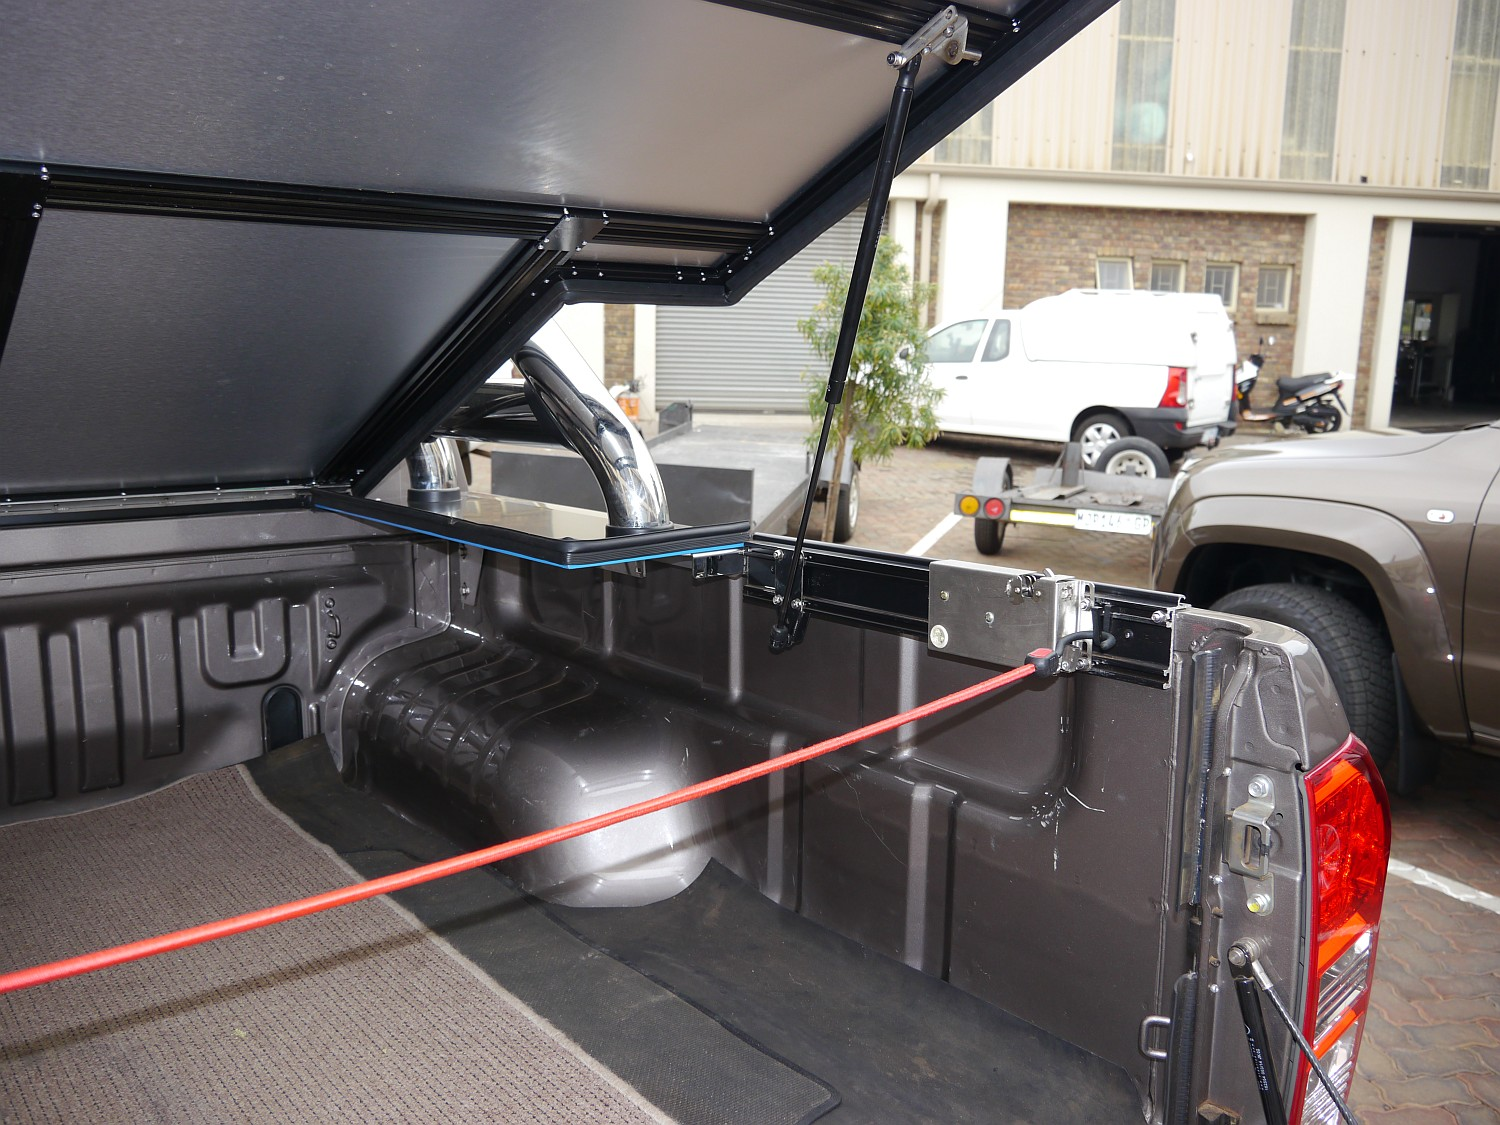 Rigidek Laderaumabdeckung - Isuzu D-Max - Double Cab mit Sports Bar 1004.JPG